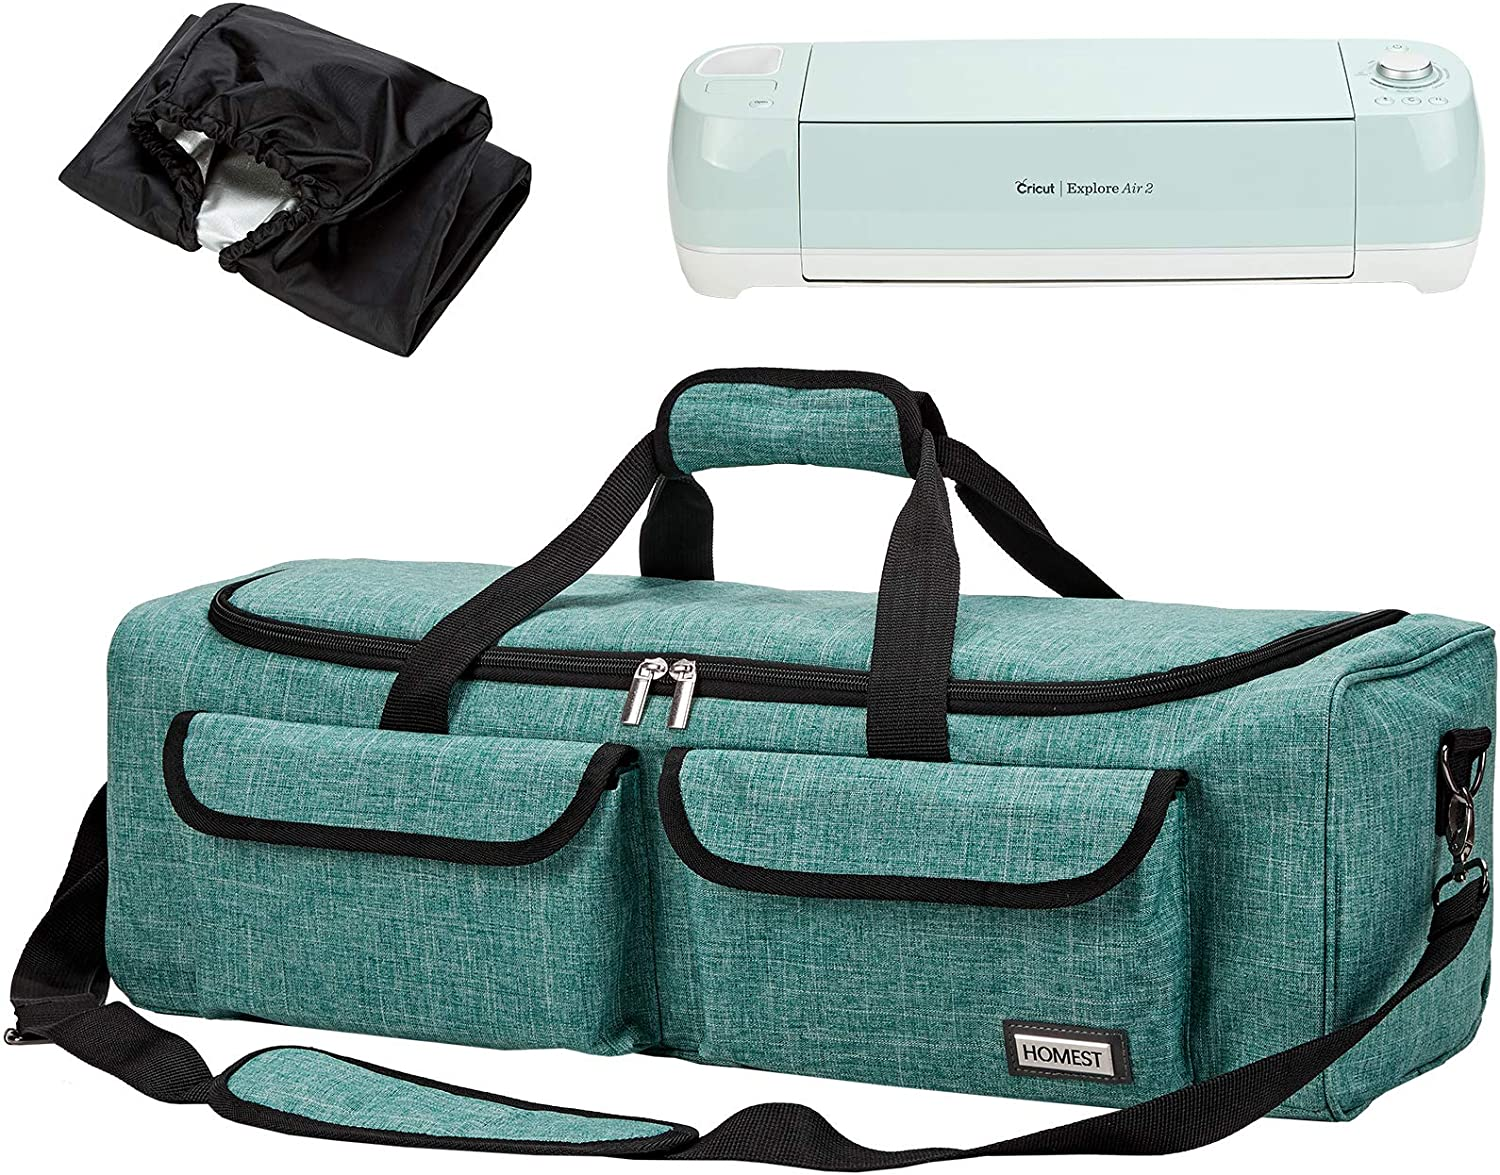 HOMEST Carrying Case Compatible with Cricut Explore Air 2, Cricut Maker, Silhouette CAMEO3, Green (Patent Design)